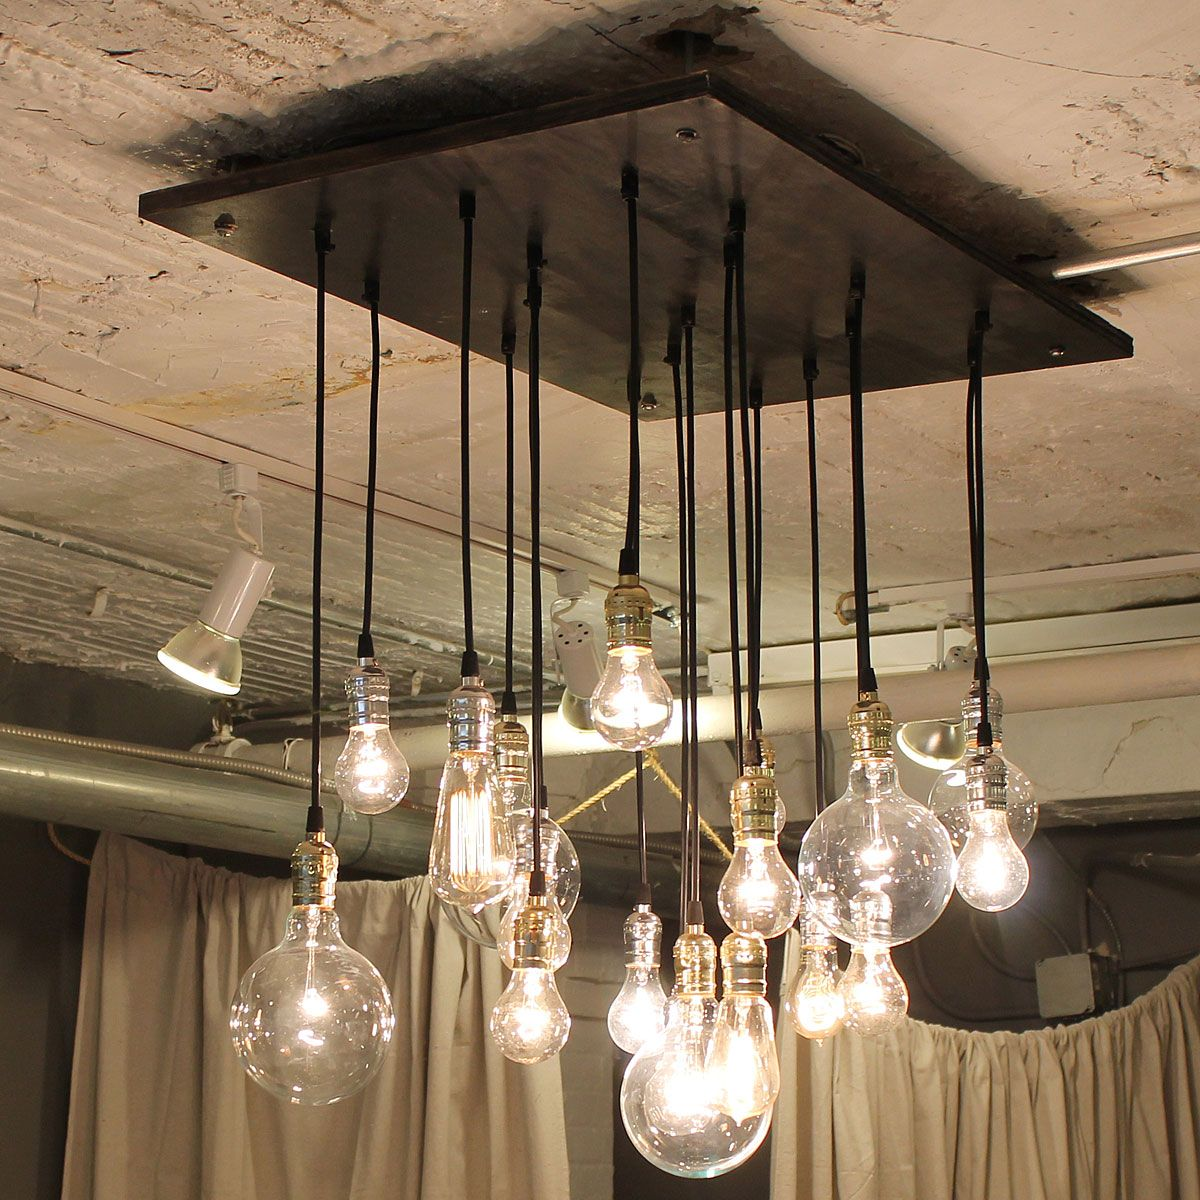 kitchen black themes for fixtures pendant bulb exterior lighting industrial restoration inside ideas extraordinary stunning white